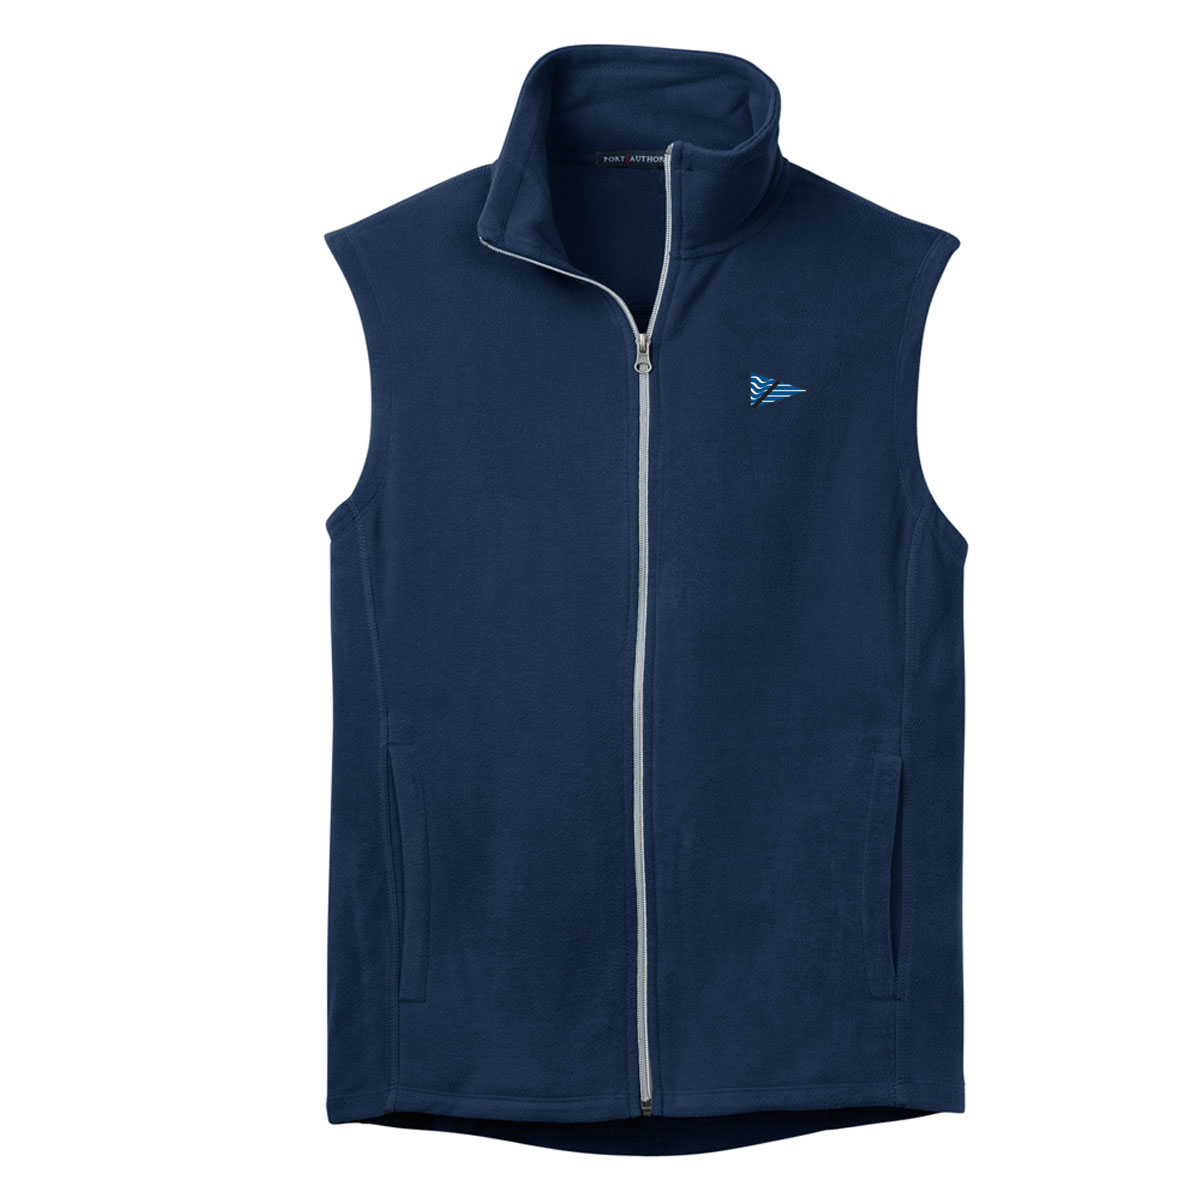 Breakwater Yacht Club - Men's Fleece Vest